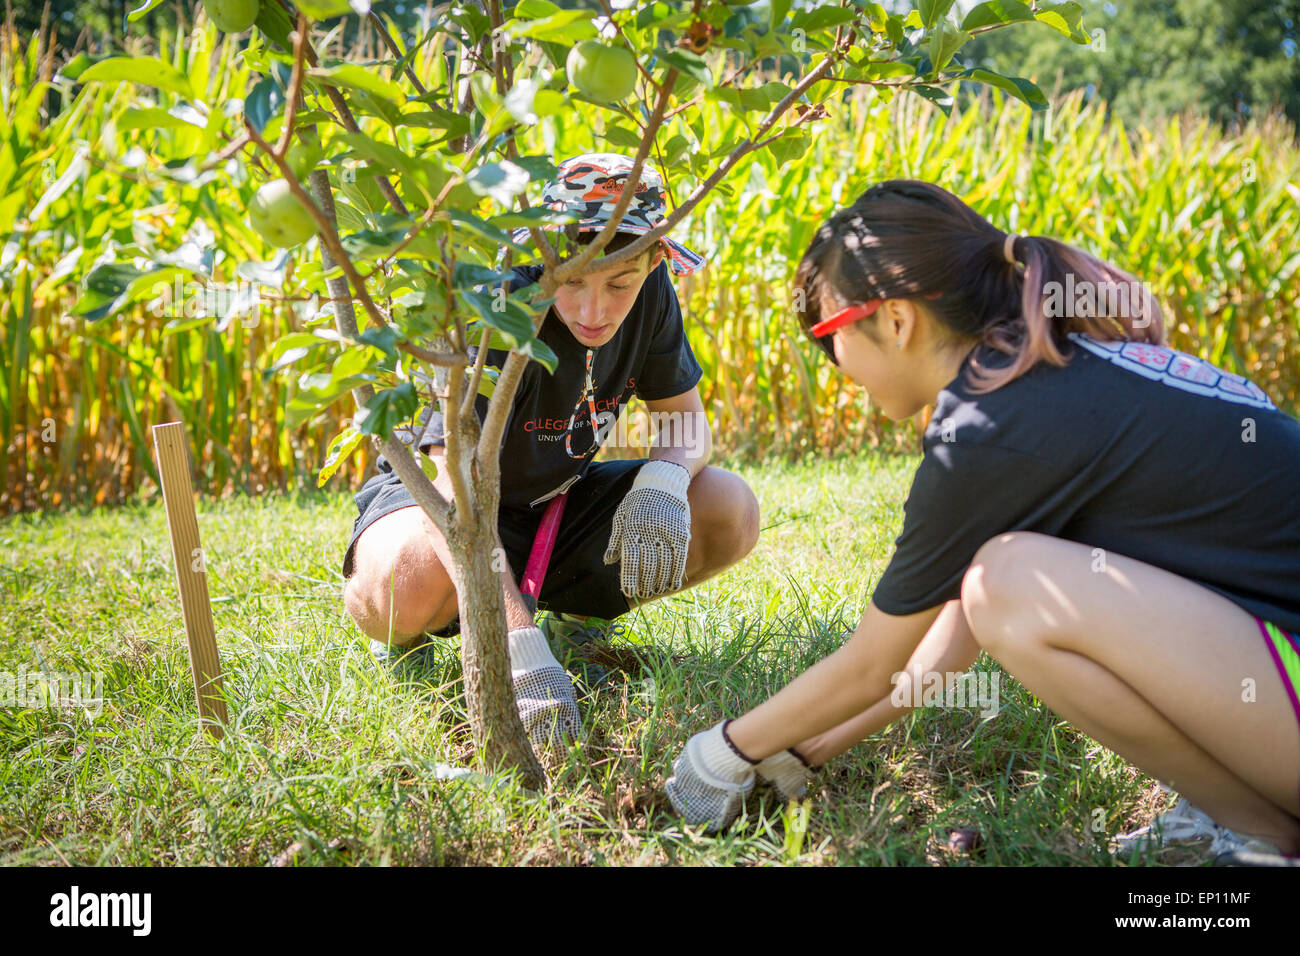 Two young adults planting a tree. - Stock Image